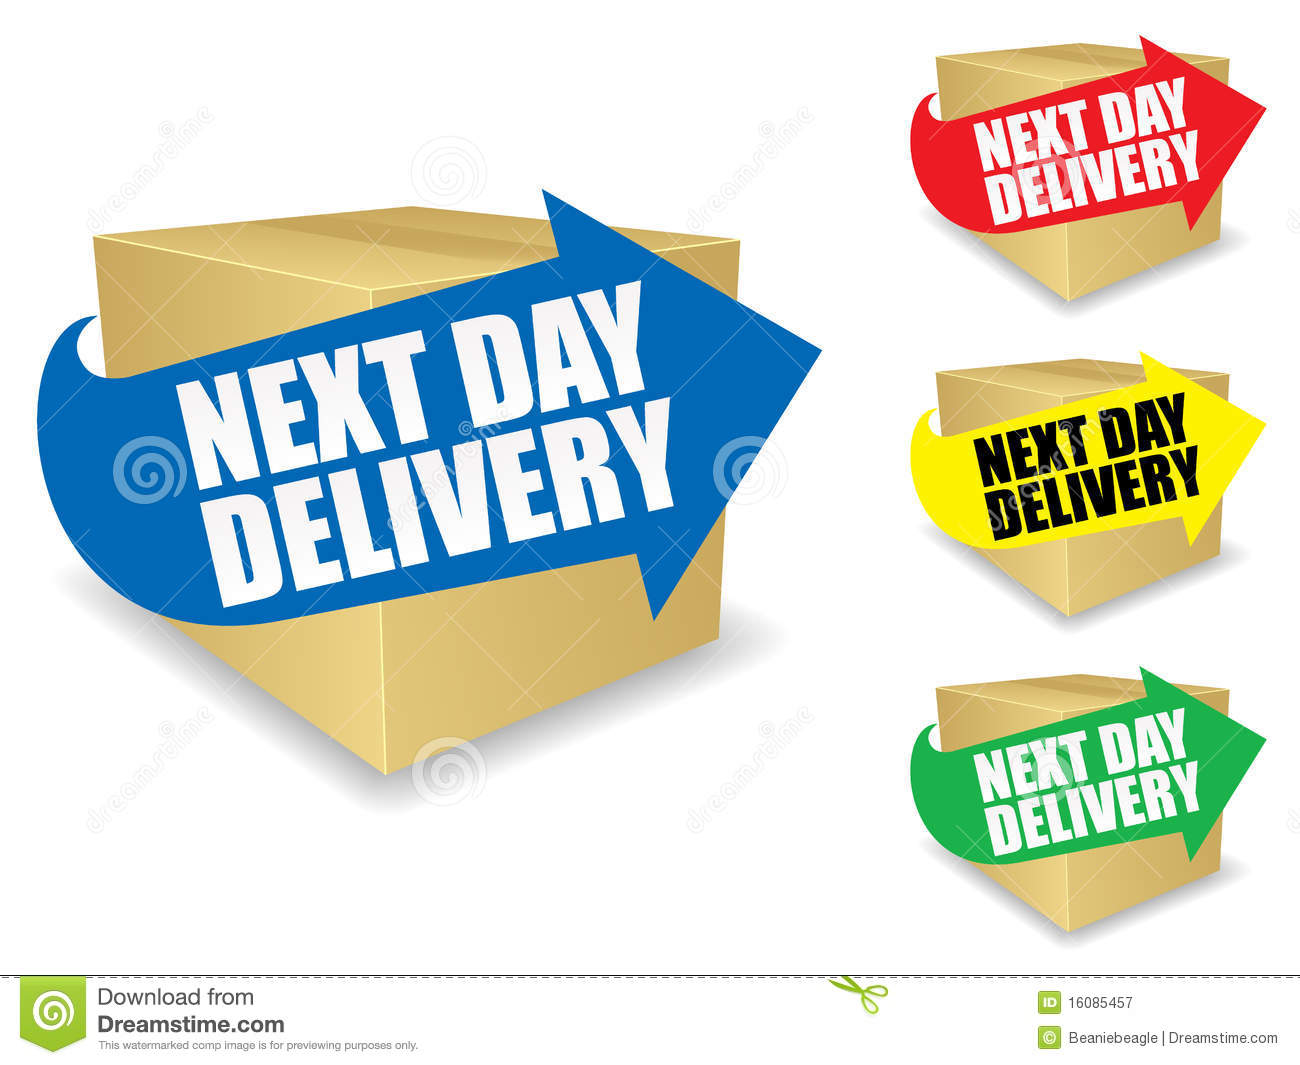 We offer free next day delivery to all orders in the UK excl Ireland * Orders placed Monday – Friday before 3pm will be dispatched the same working day. * Orders dispatched on Friday will be delivered on Monday. * Orders placed on Saturday or Sunday will be dispatched the next working day.